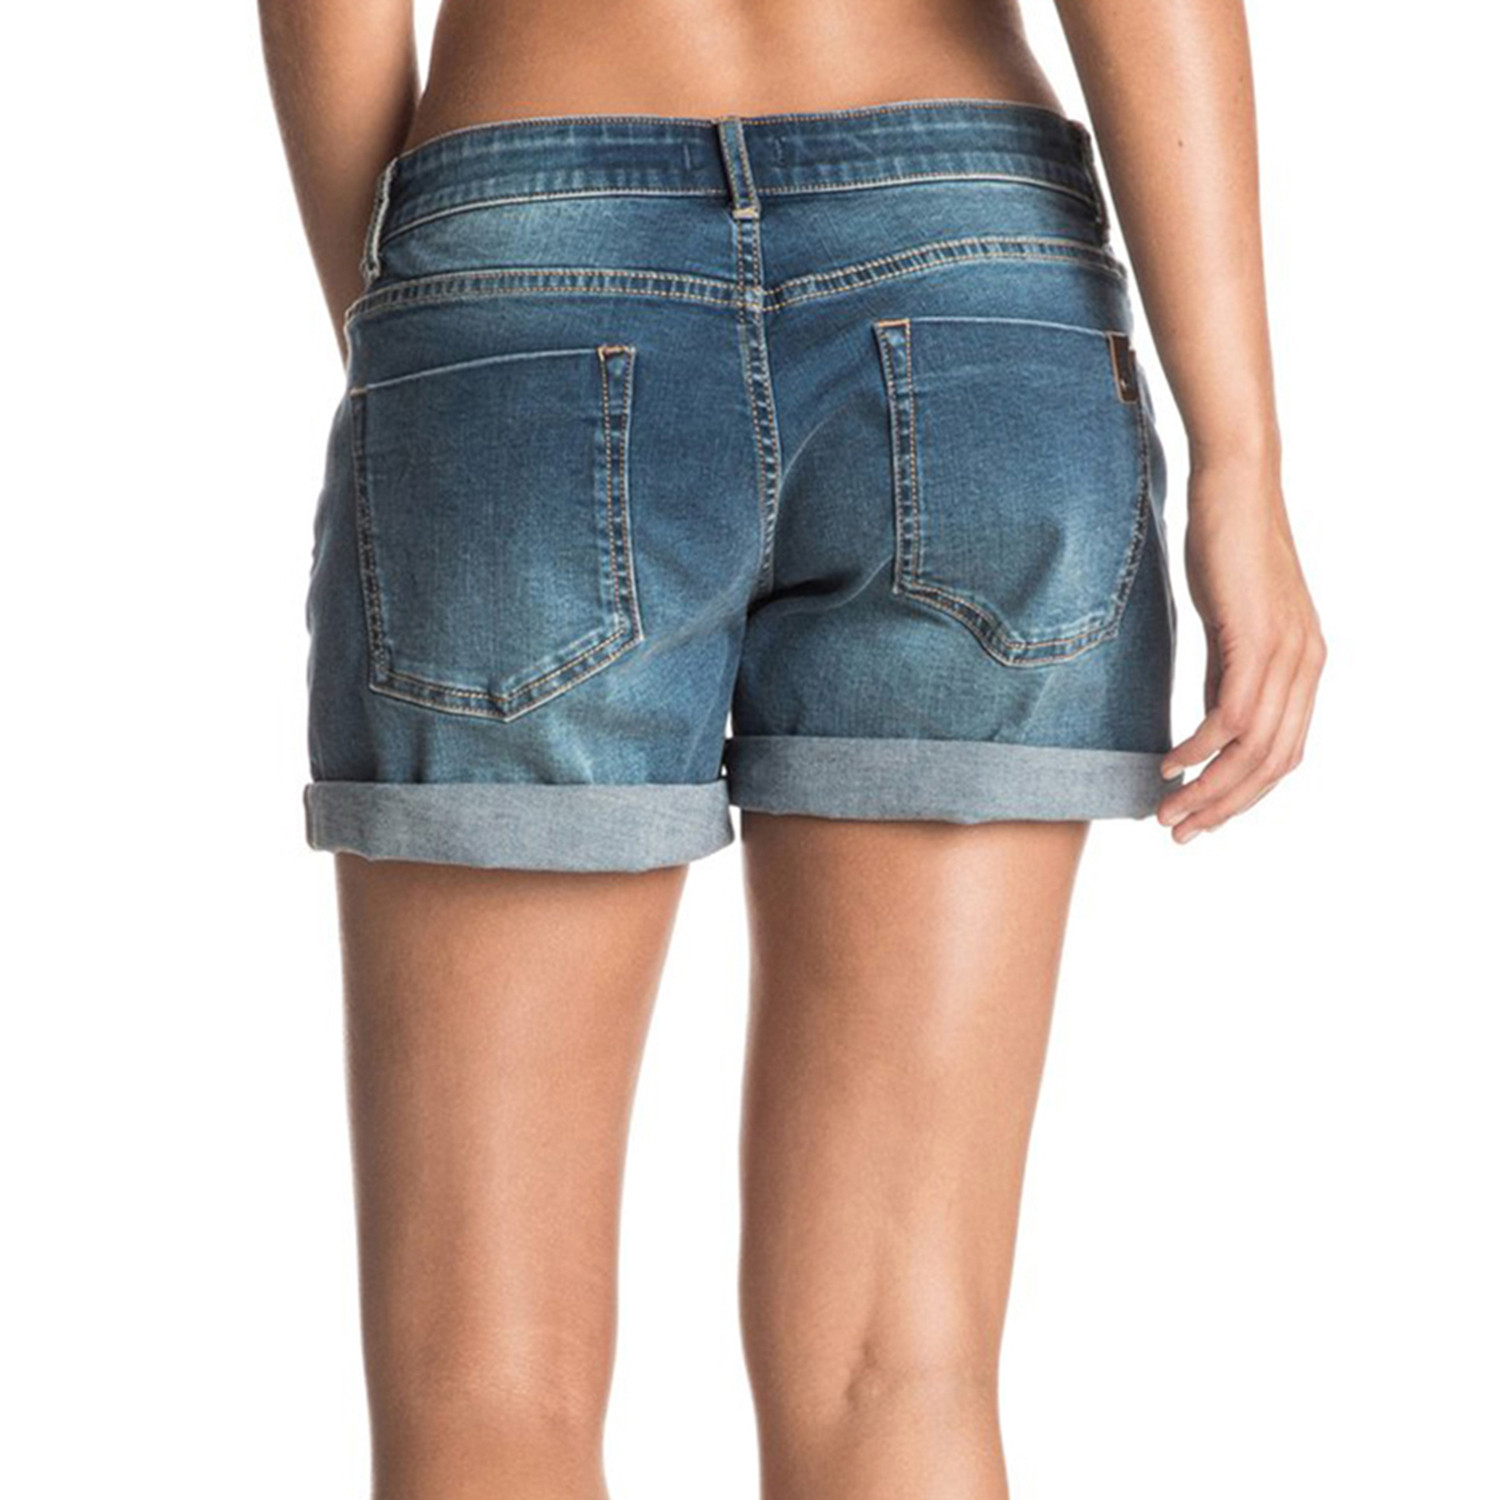 Rolly Up Short Jeans Femme ROXY BLEU pas